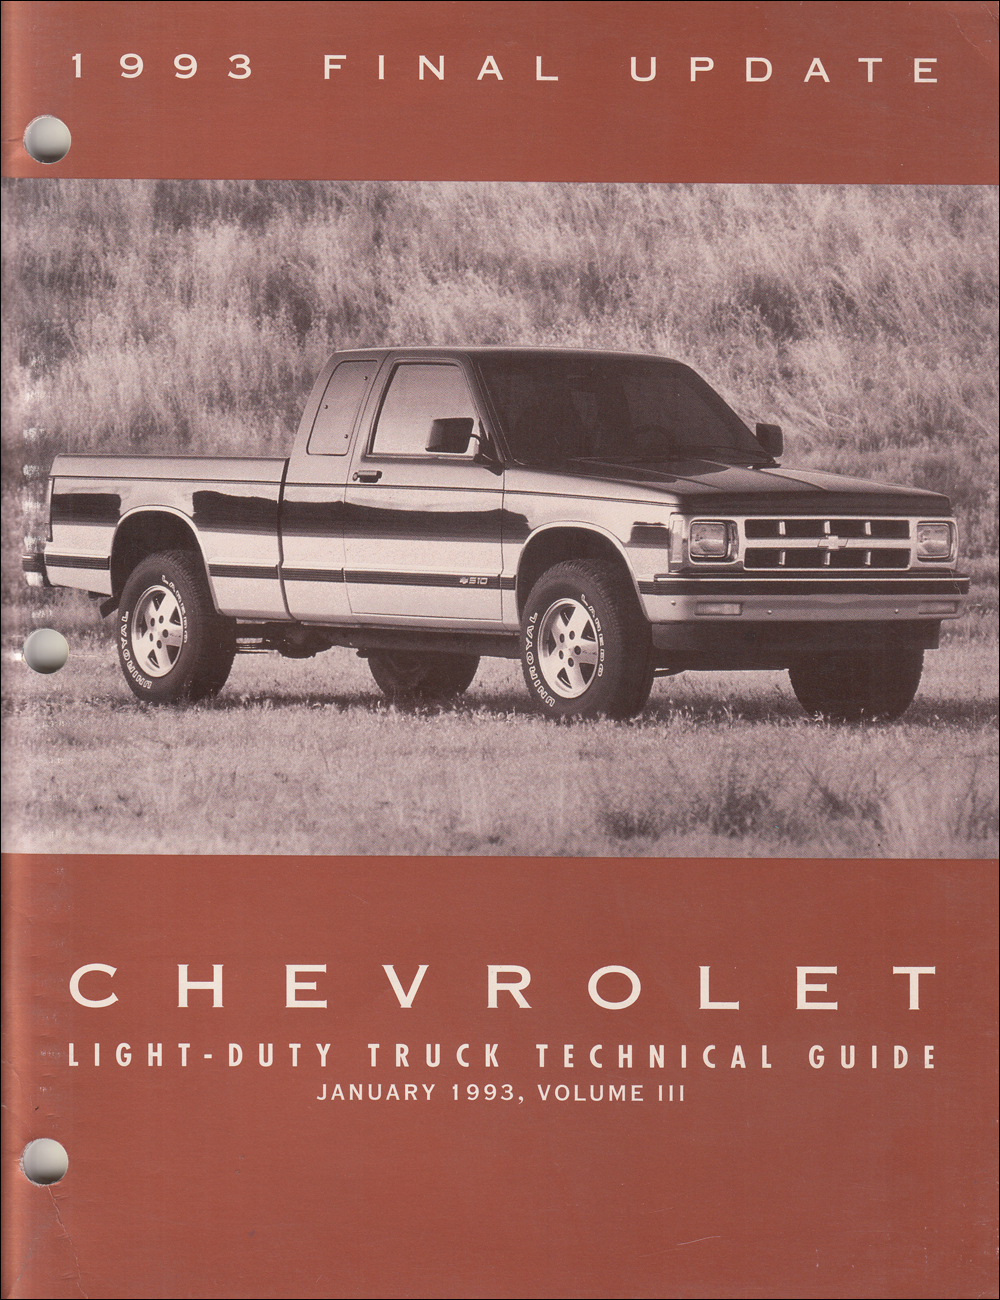 1993 Chevrolet Truck Technical Guide Dealer Album Original Final Issue